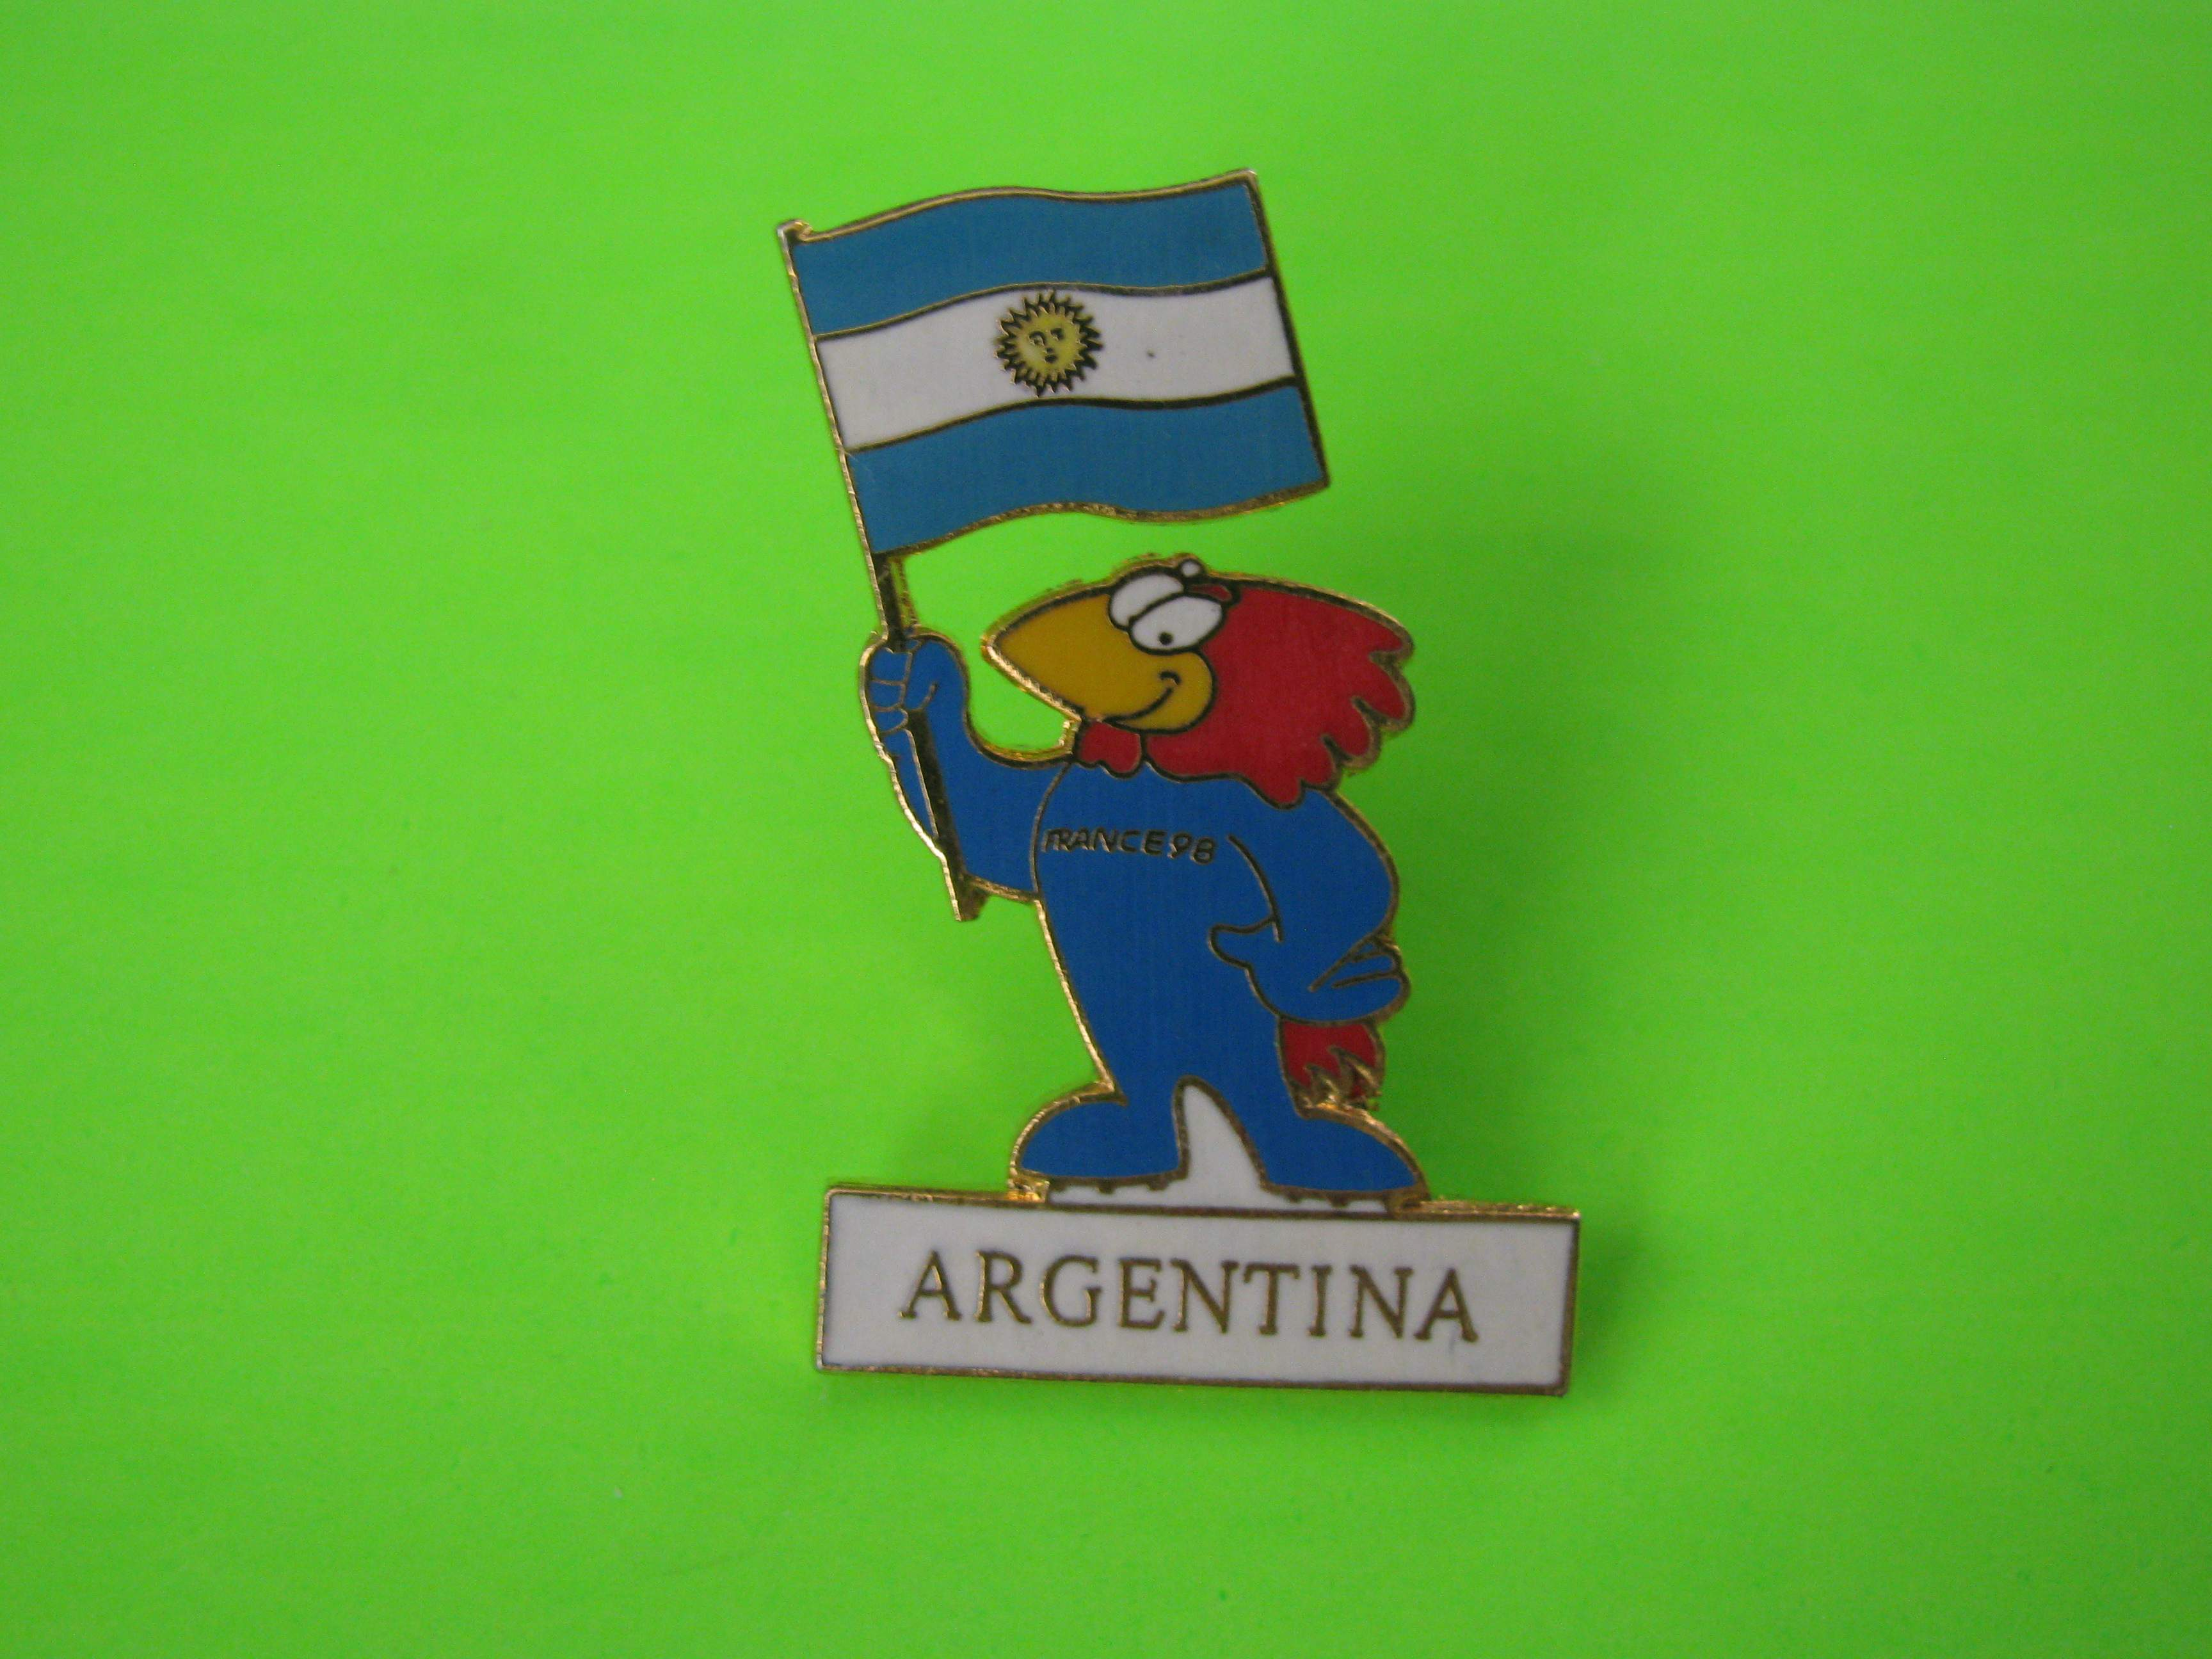 France 1998 Argentina Soccer Team Pin with Butterfly Clutch, 1995 (1SL)